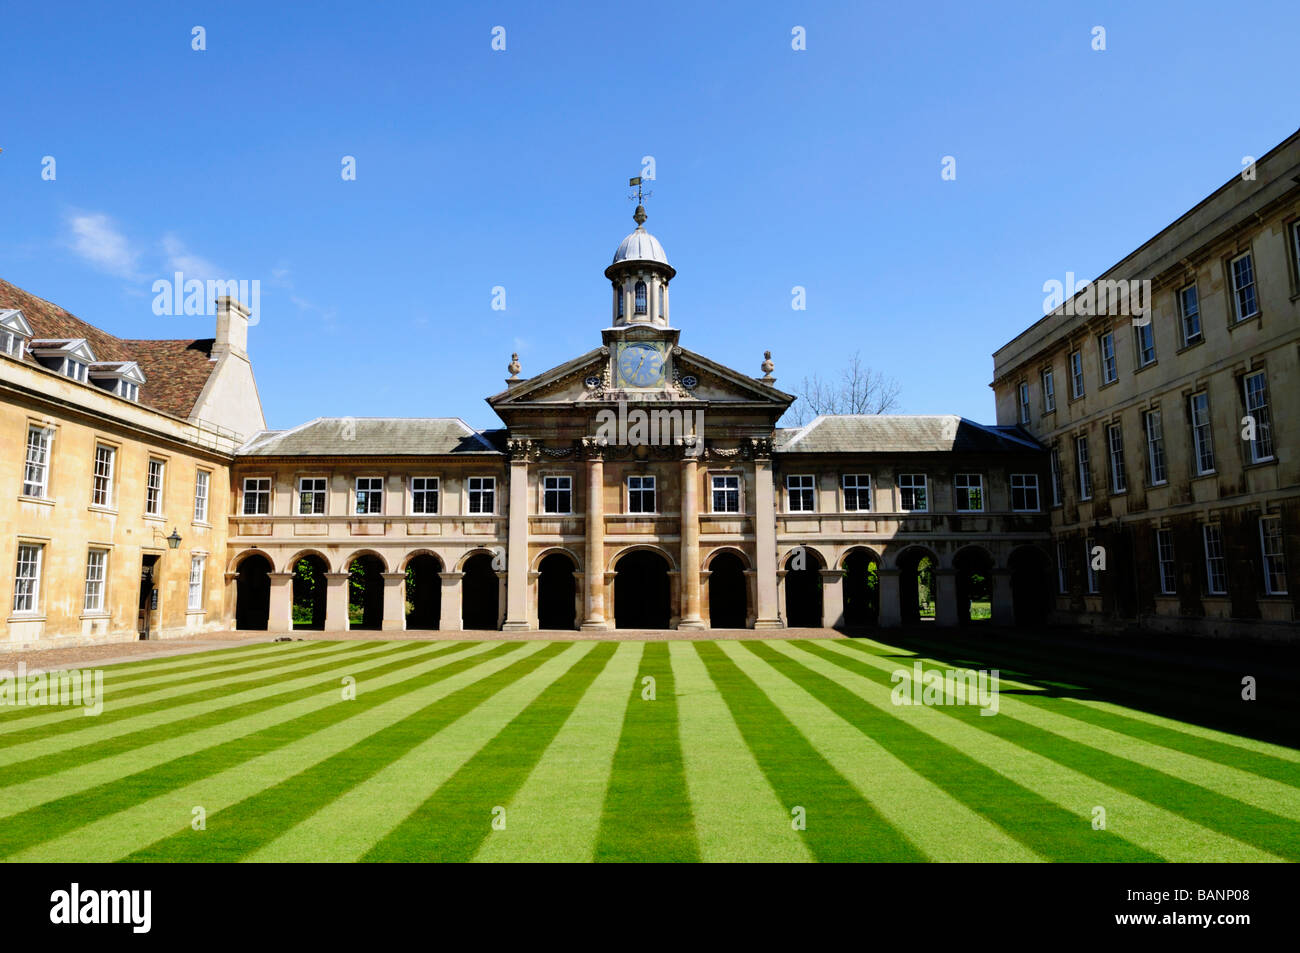 Emmanuel College Cambridge England UK - Stock Image